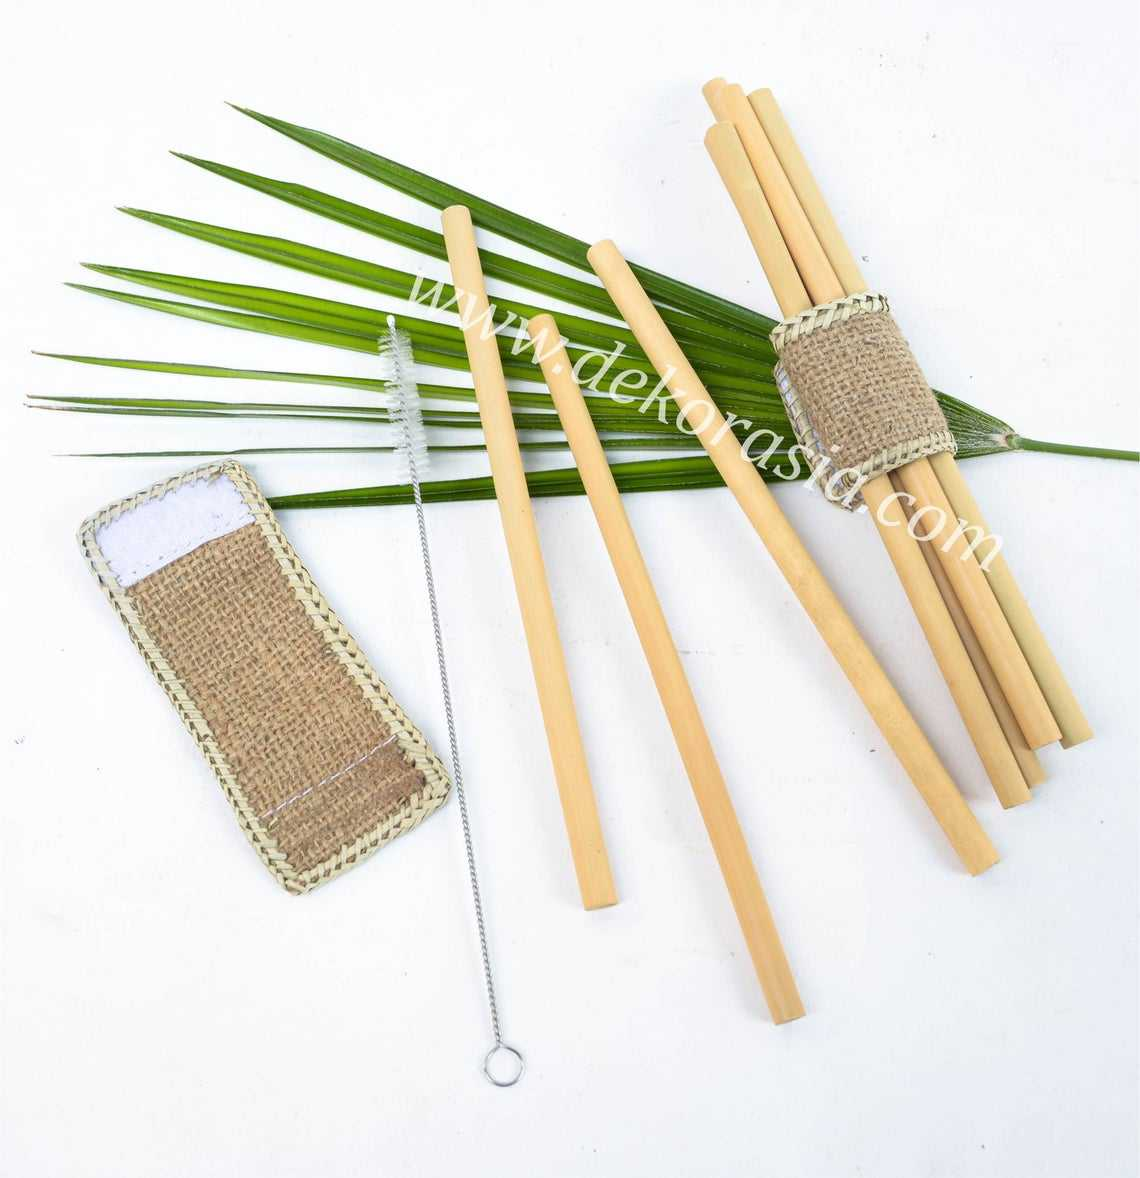 Bamboo Straw Set with Bamboo Napkin Ring, ORGANIC BAMBOO DRINKING STRAWS, REUSABLE, 100% Natural